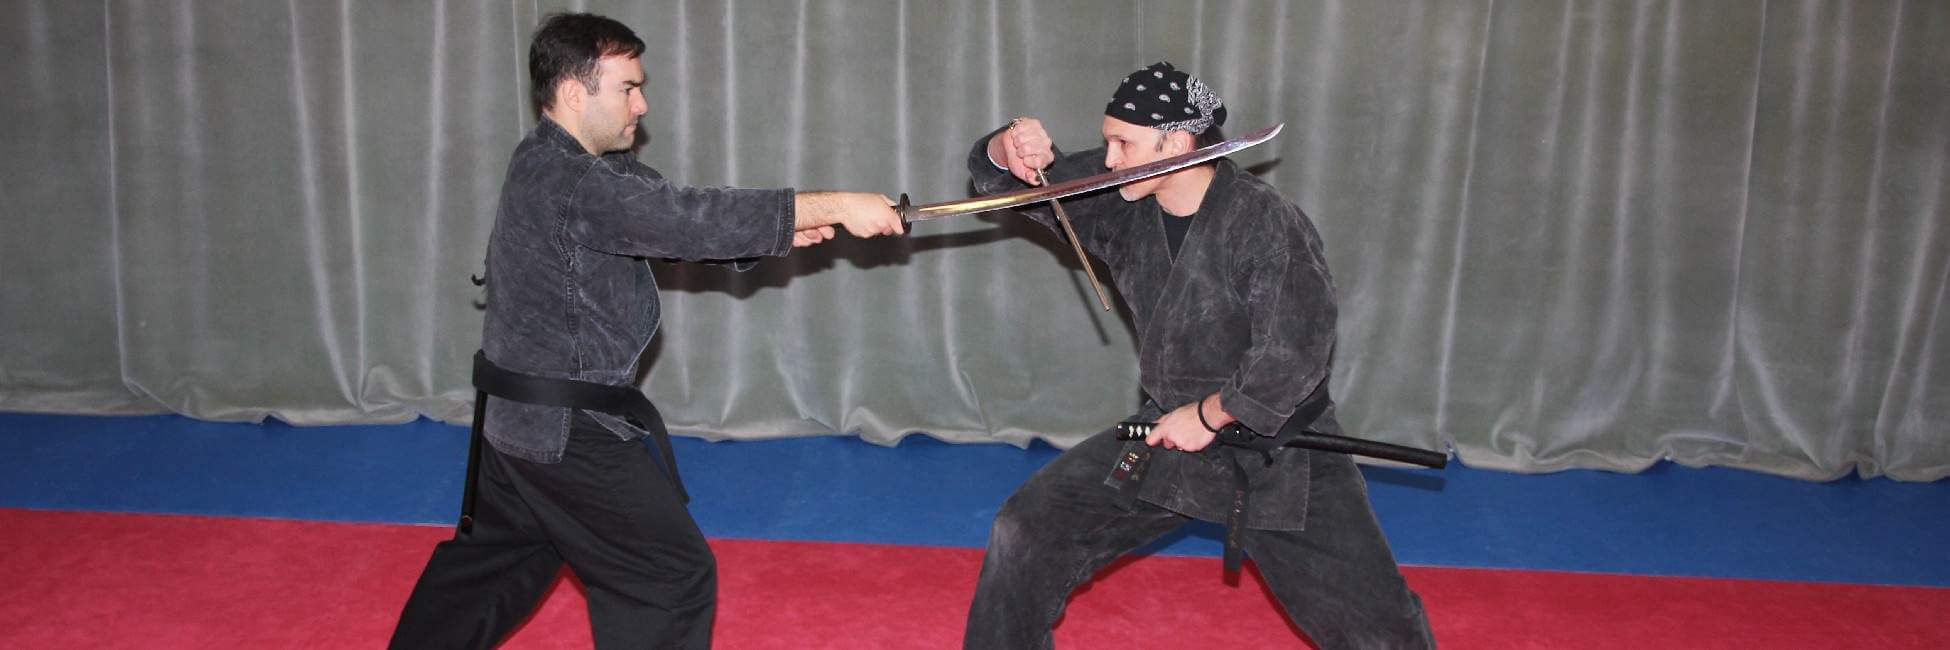 Bujinkan New York Dojo : Westchester Ninja and Samurai